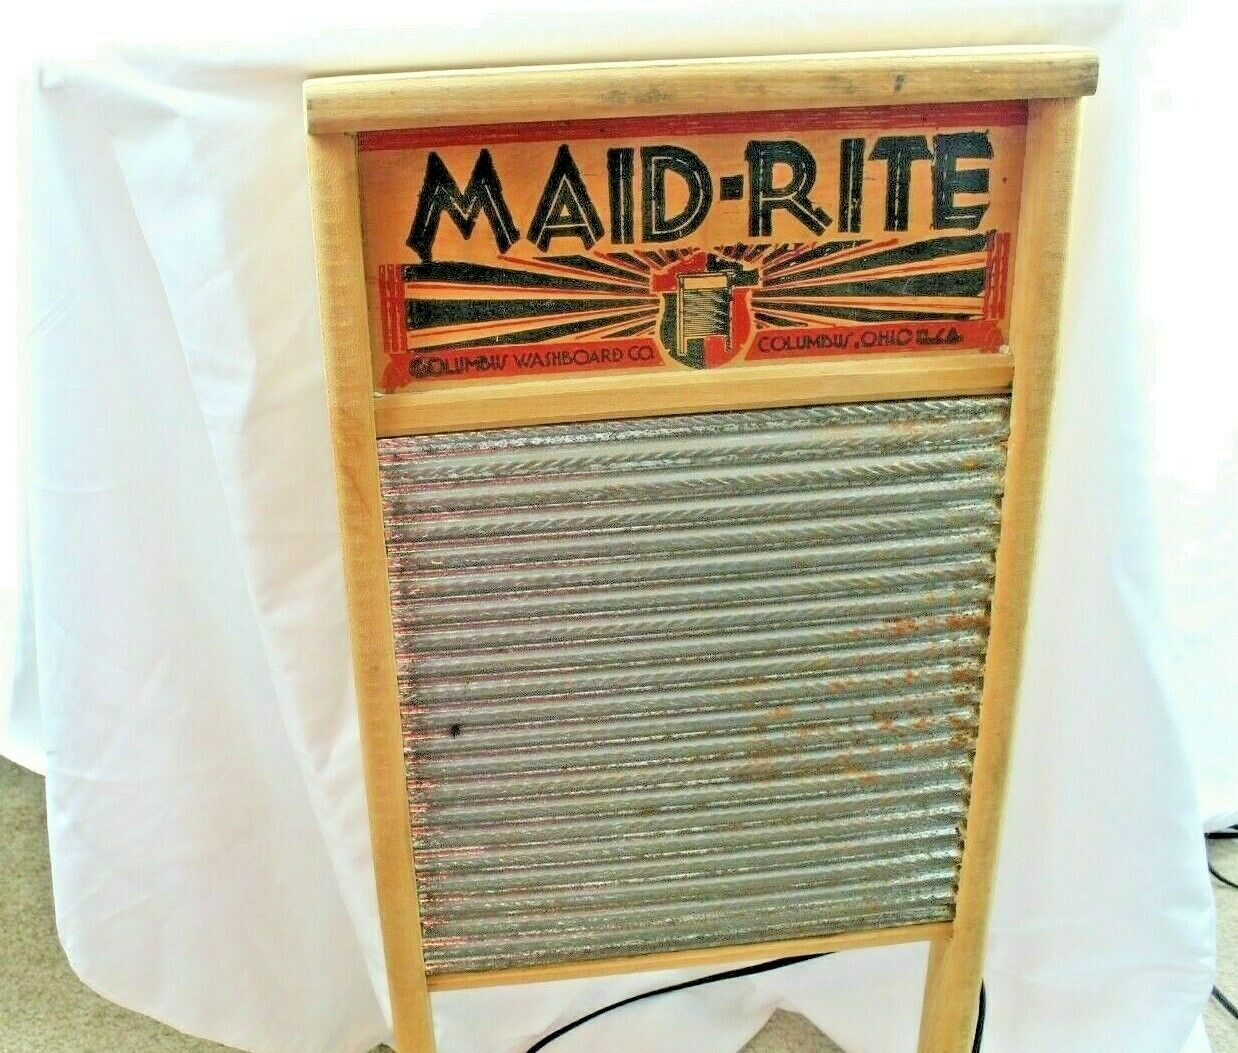 Maid-Rite Wash Board Columbus Washboard Co. 12.5 X 24  - $26.36